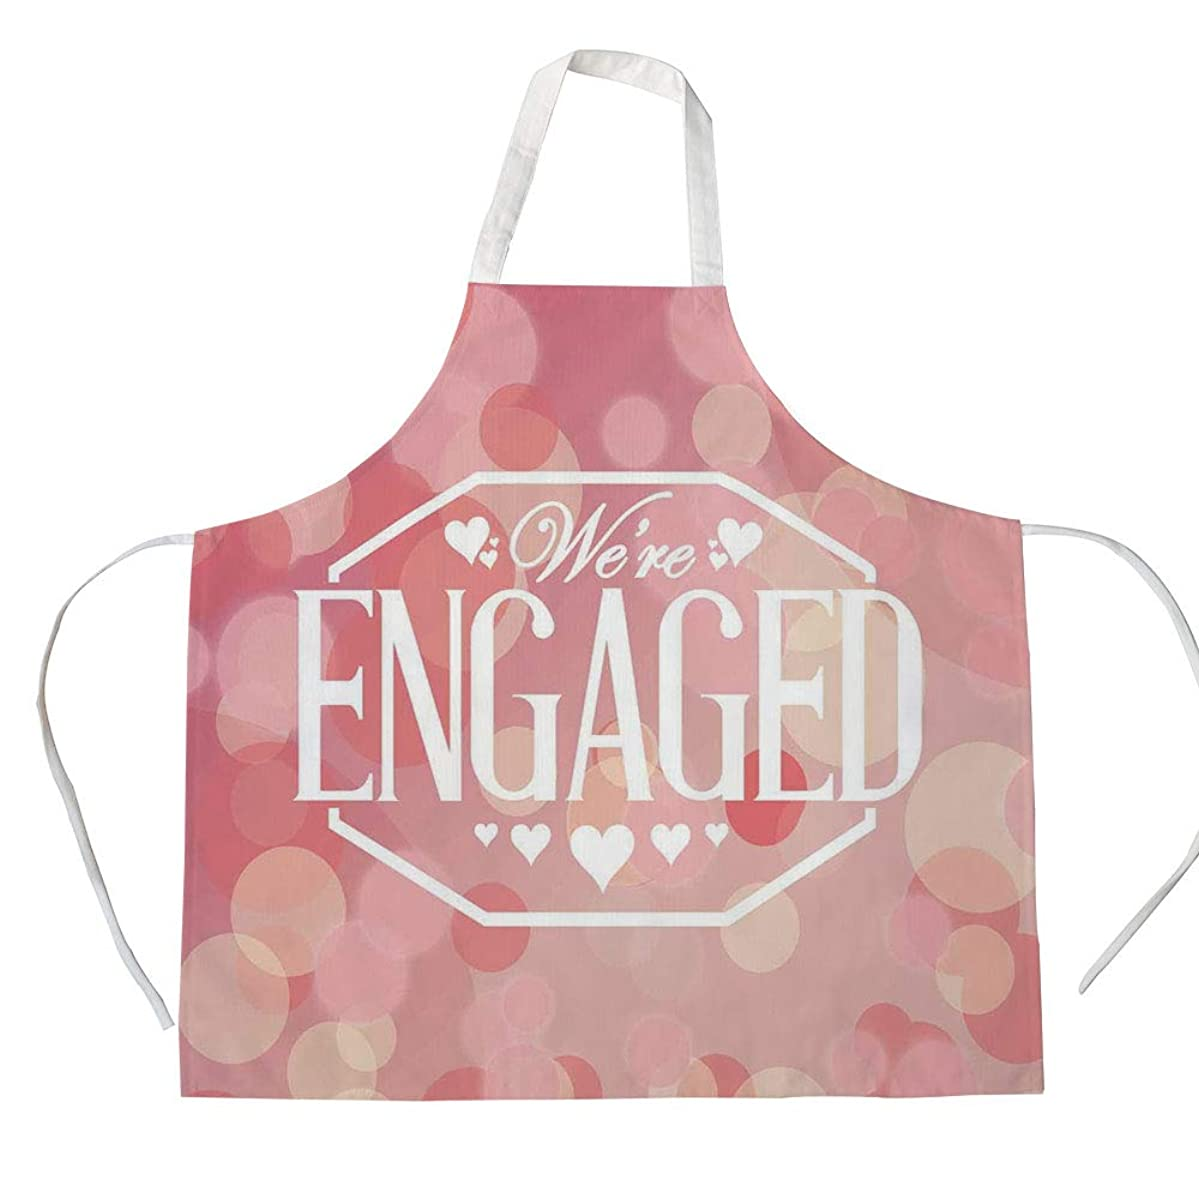 Engagement Party Decorations 3D Printed Cotton Linen Apron,Engagement Party Cards with Blurry Abstract Circles,for Cooking Baking Gardening,Salmon Pink and White